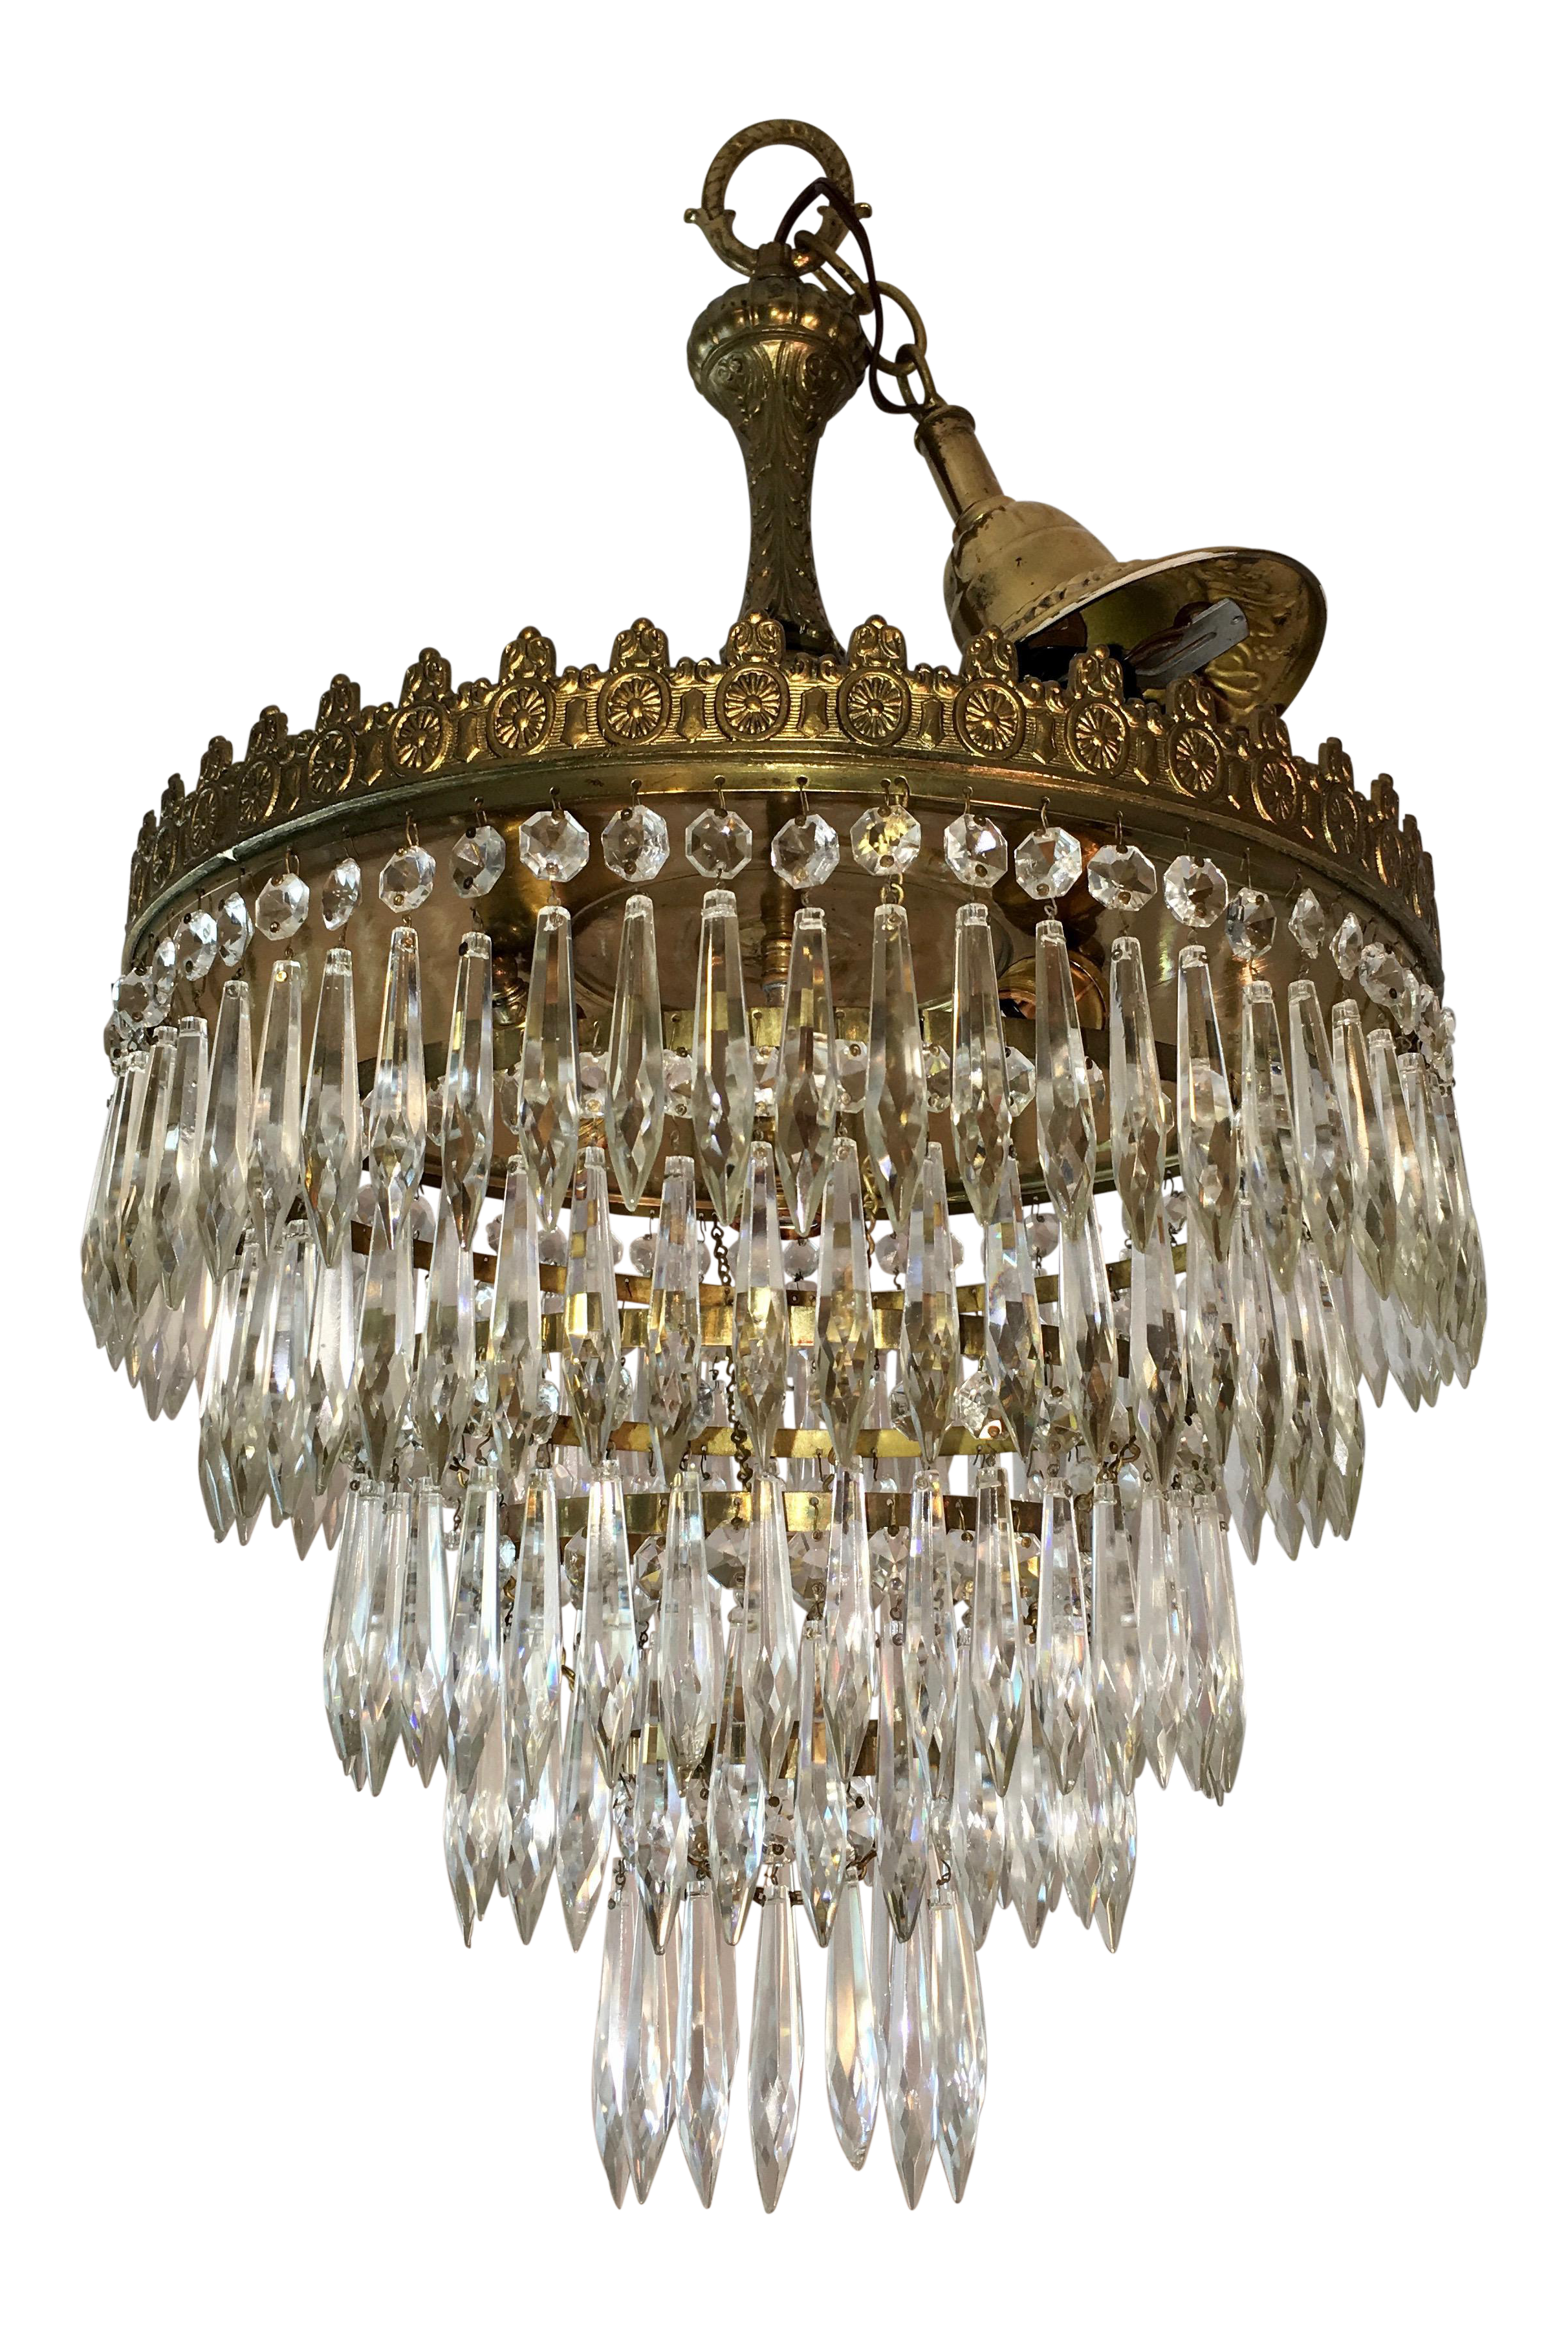 in cottage chandelier sydney fashioned japanese a old art renovation fashionable pin deco